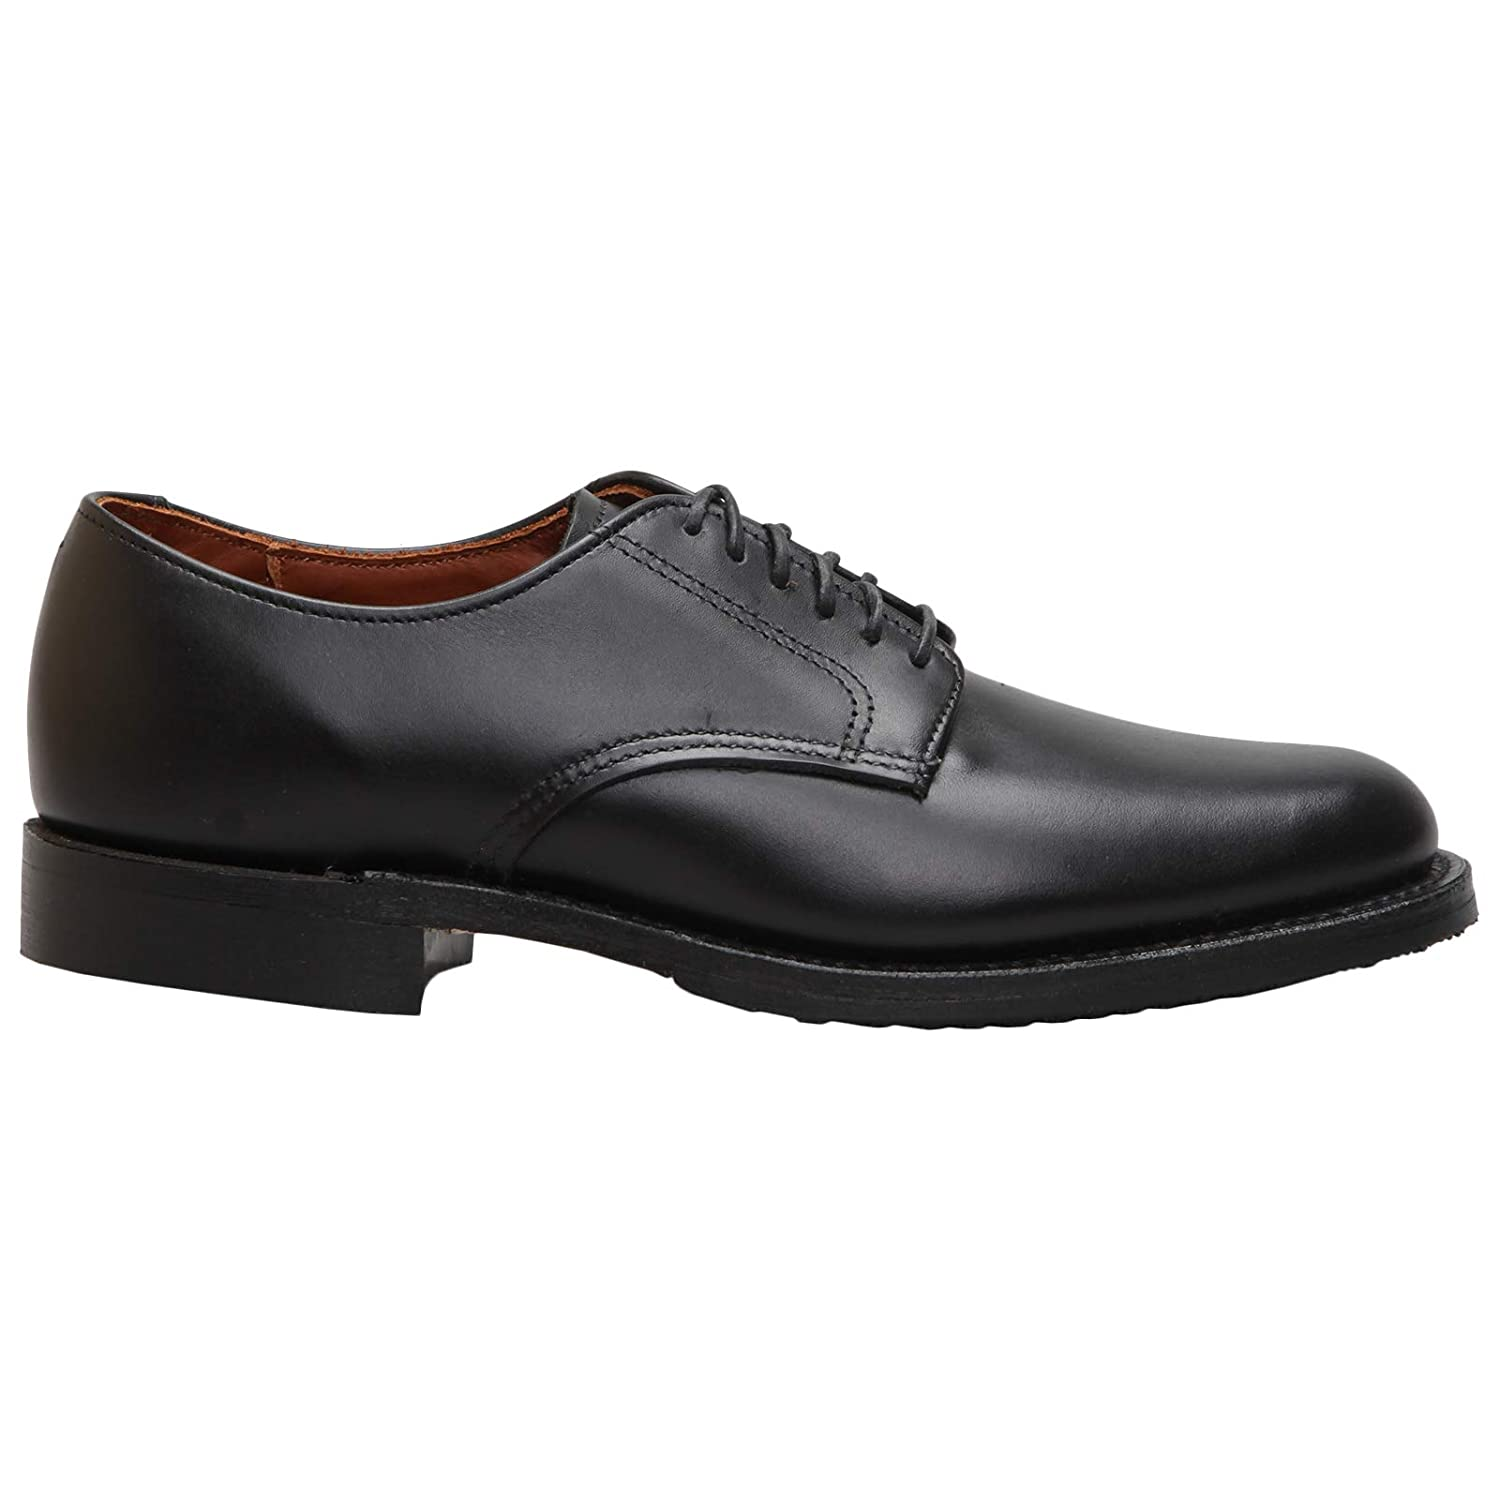 Red Wing Hombre Williston Oxford Cuero Black Zapatos 44 EU